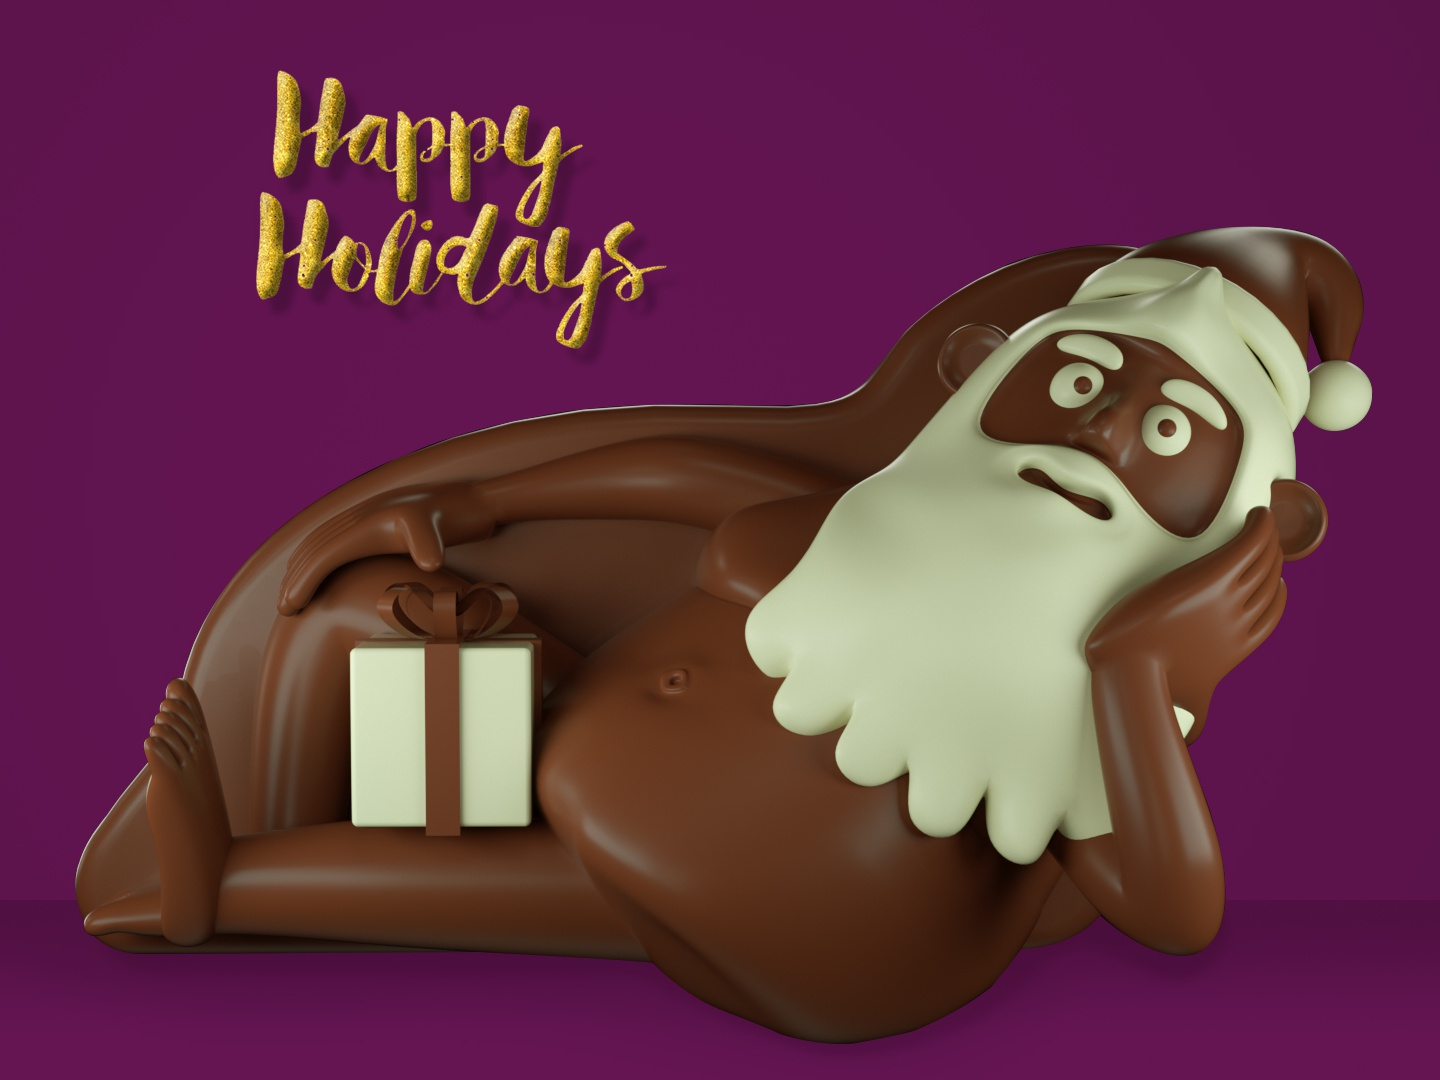 Happy Naughty Holidays cinema 4d render design character design illustration 3d character